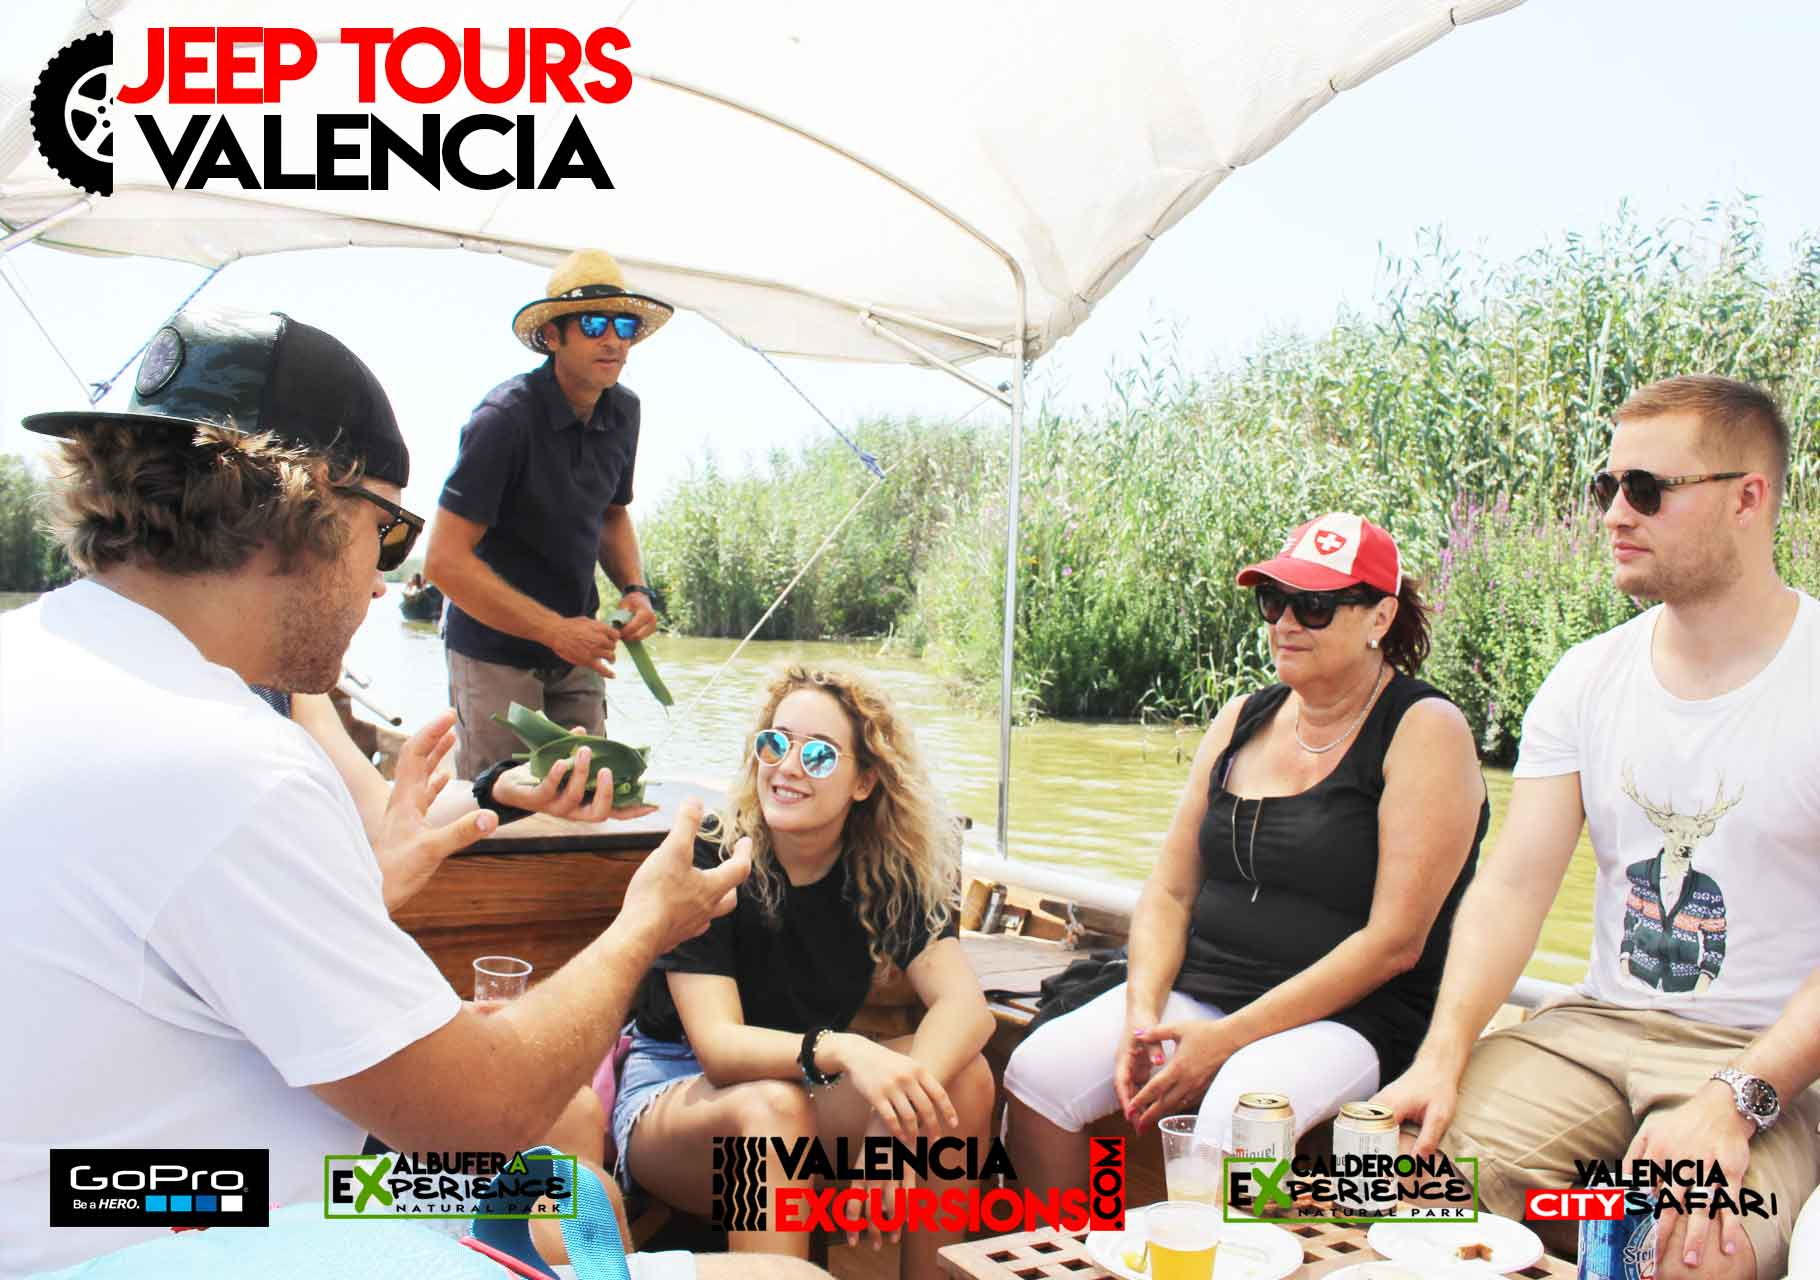 Tapas in El Palmar Boat Trip in Albufera National Park during Albufera EXperience Jeep Tour Valencia